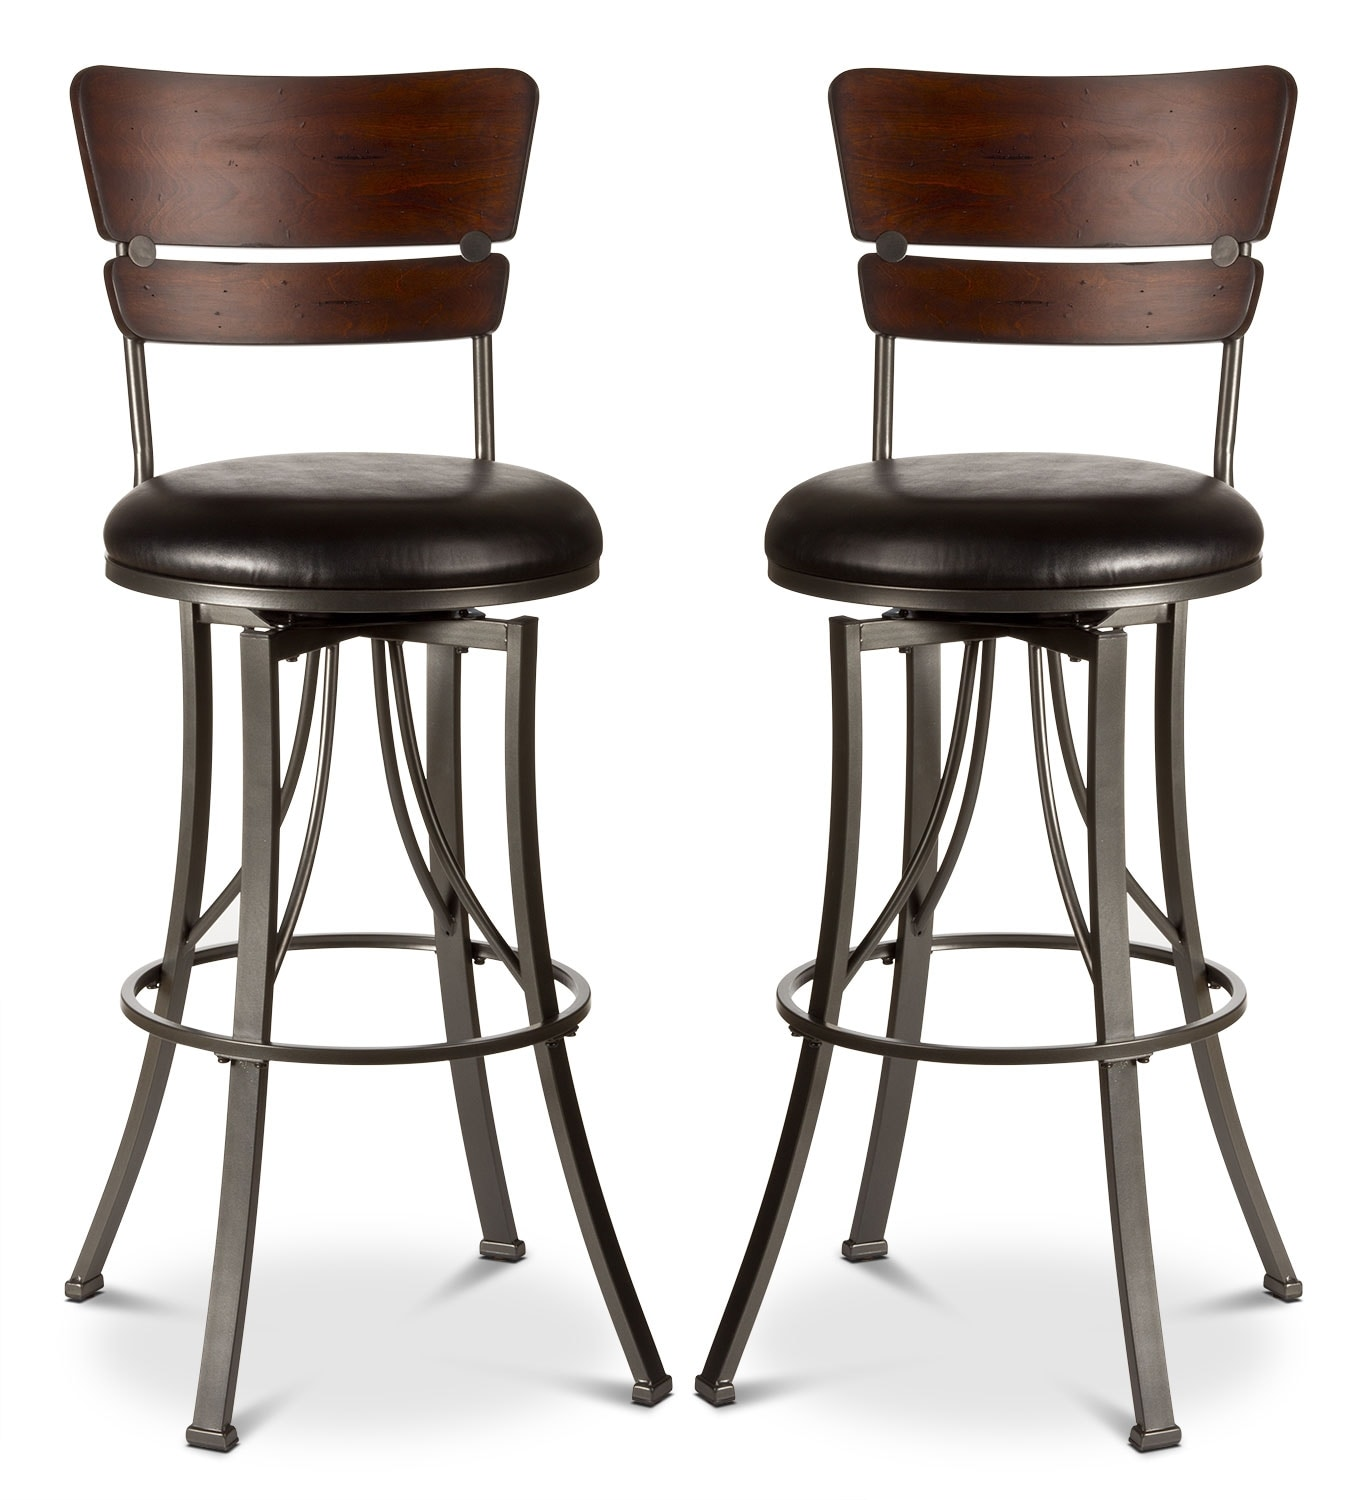 Tabouret bar pivotant Santa Monica - ensemble de 2